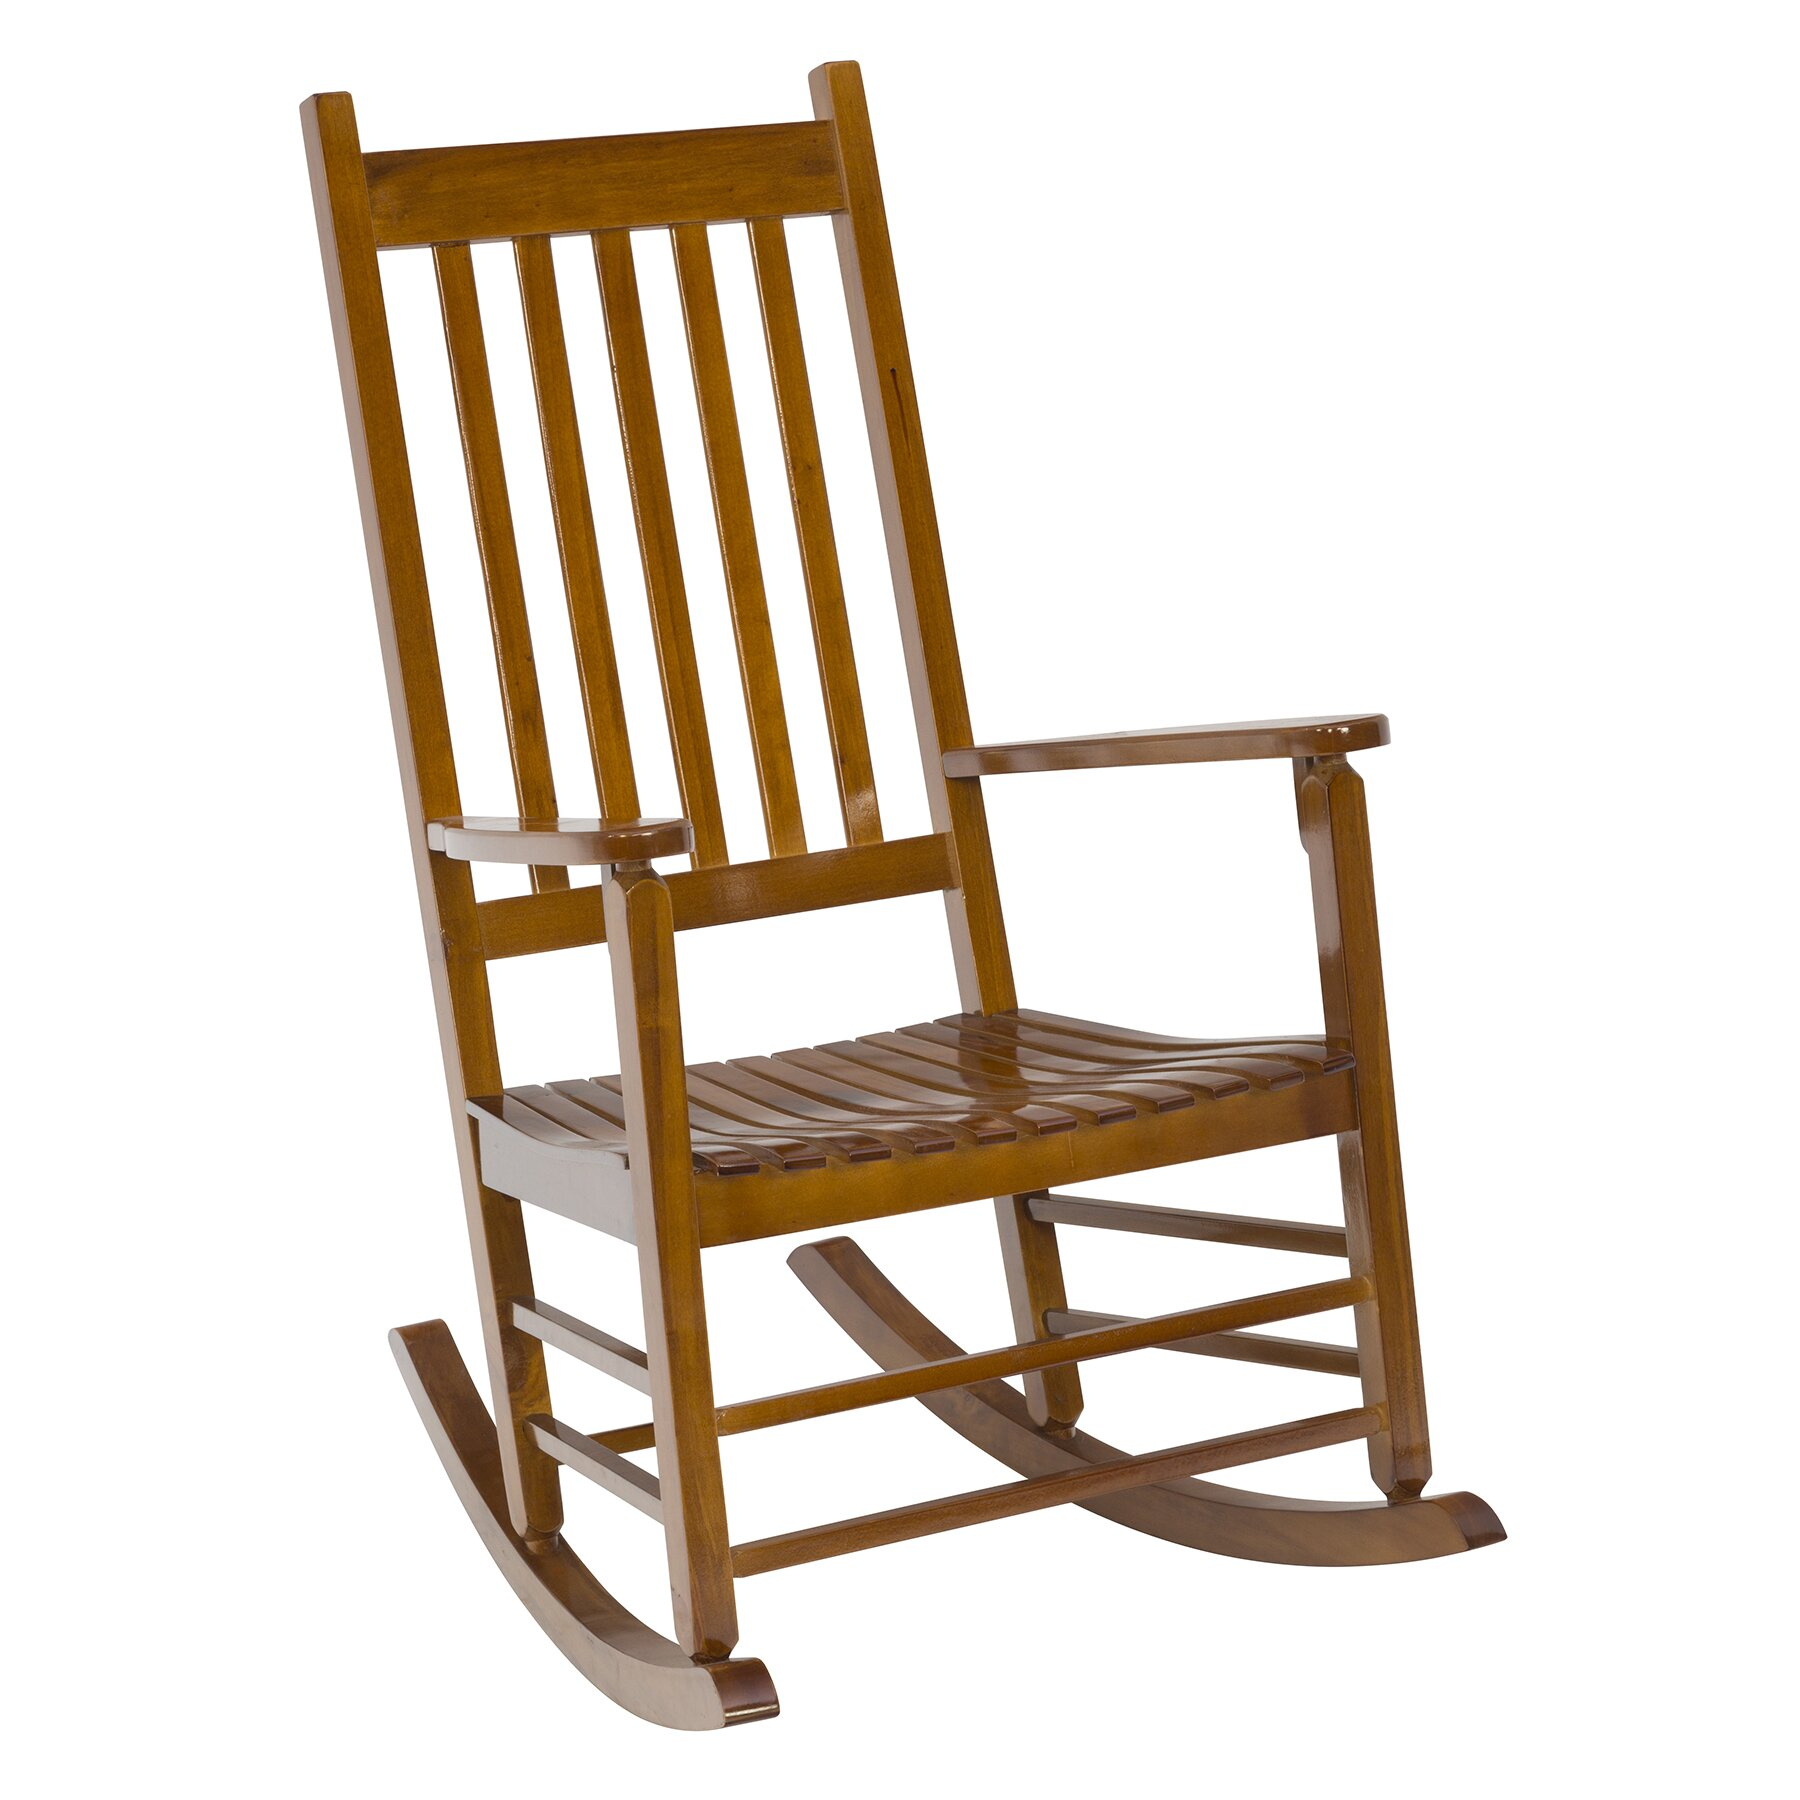 Jack post mission rocking chair reviews wayfair - Rocking chair but ...